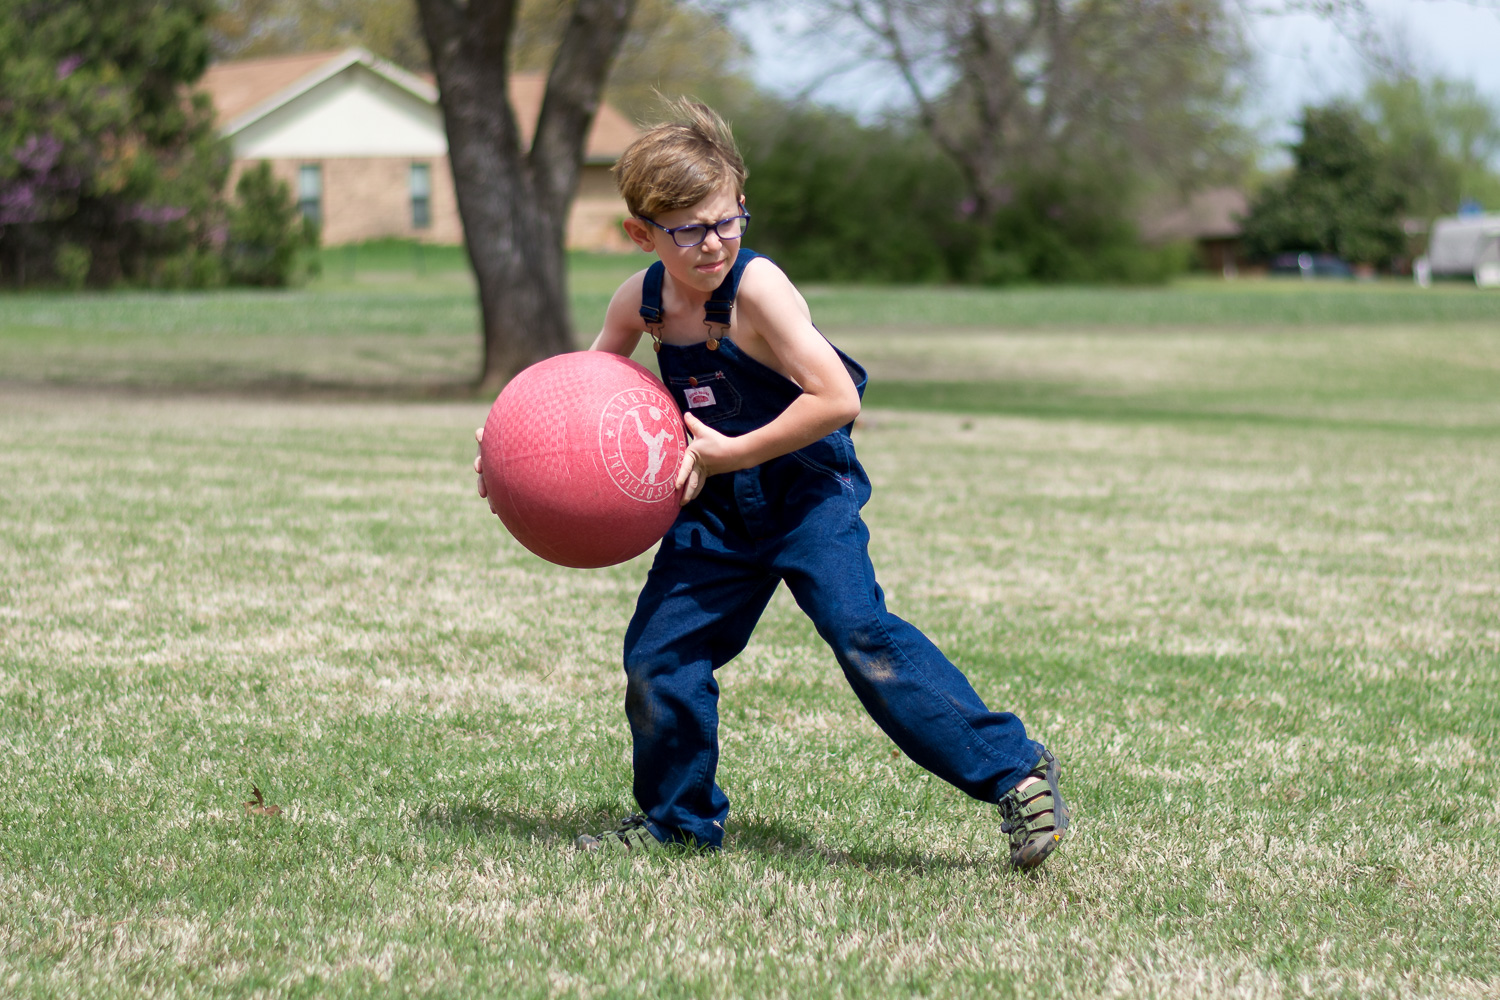 beginner photography tips – a child playing sport